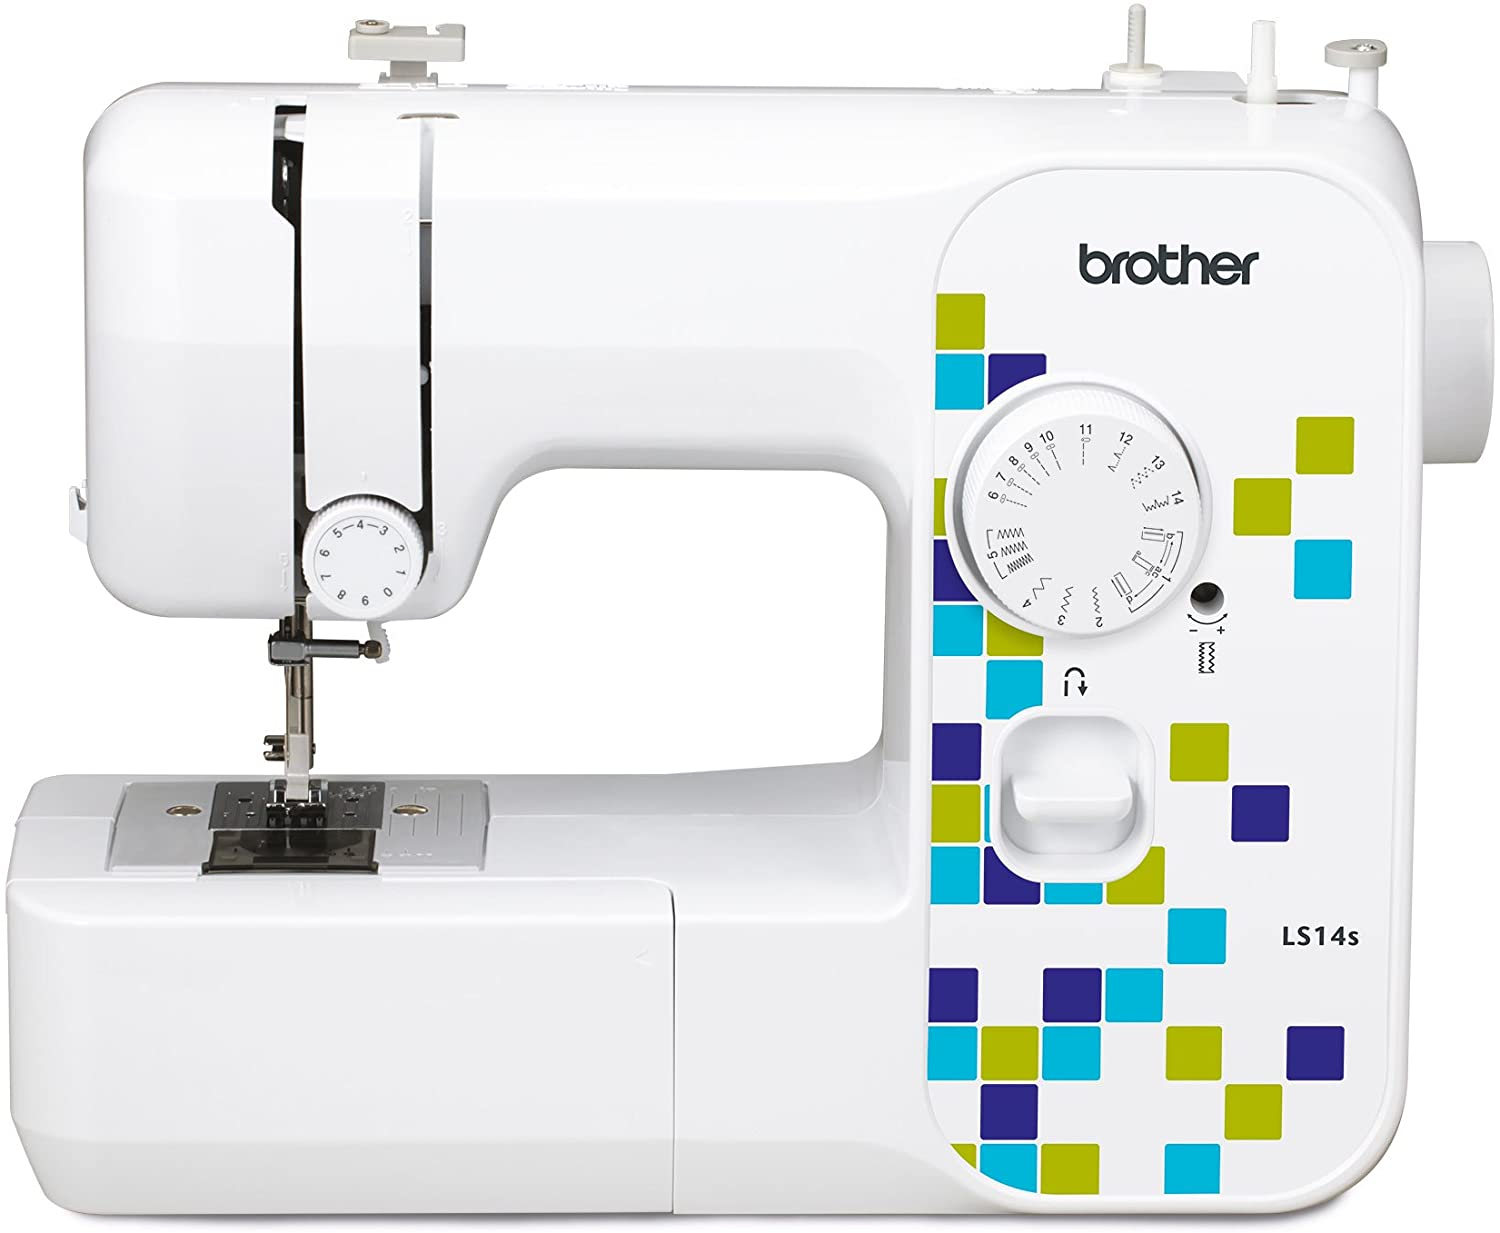 Brother LS14S Metal Chassis Sewing Machine: Amazon.co.uk: Kitchen & Home